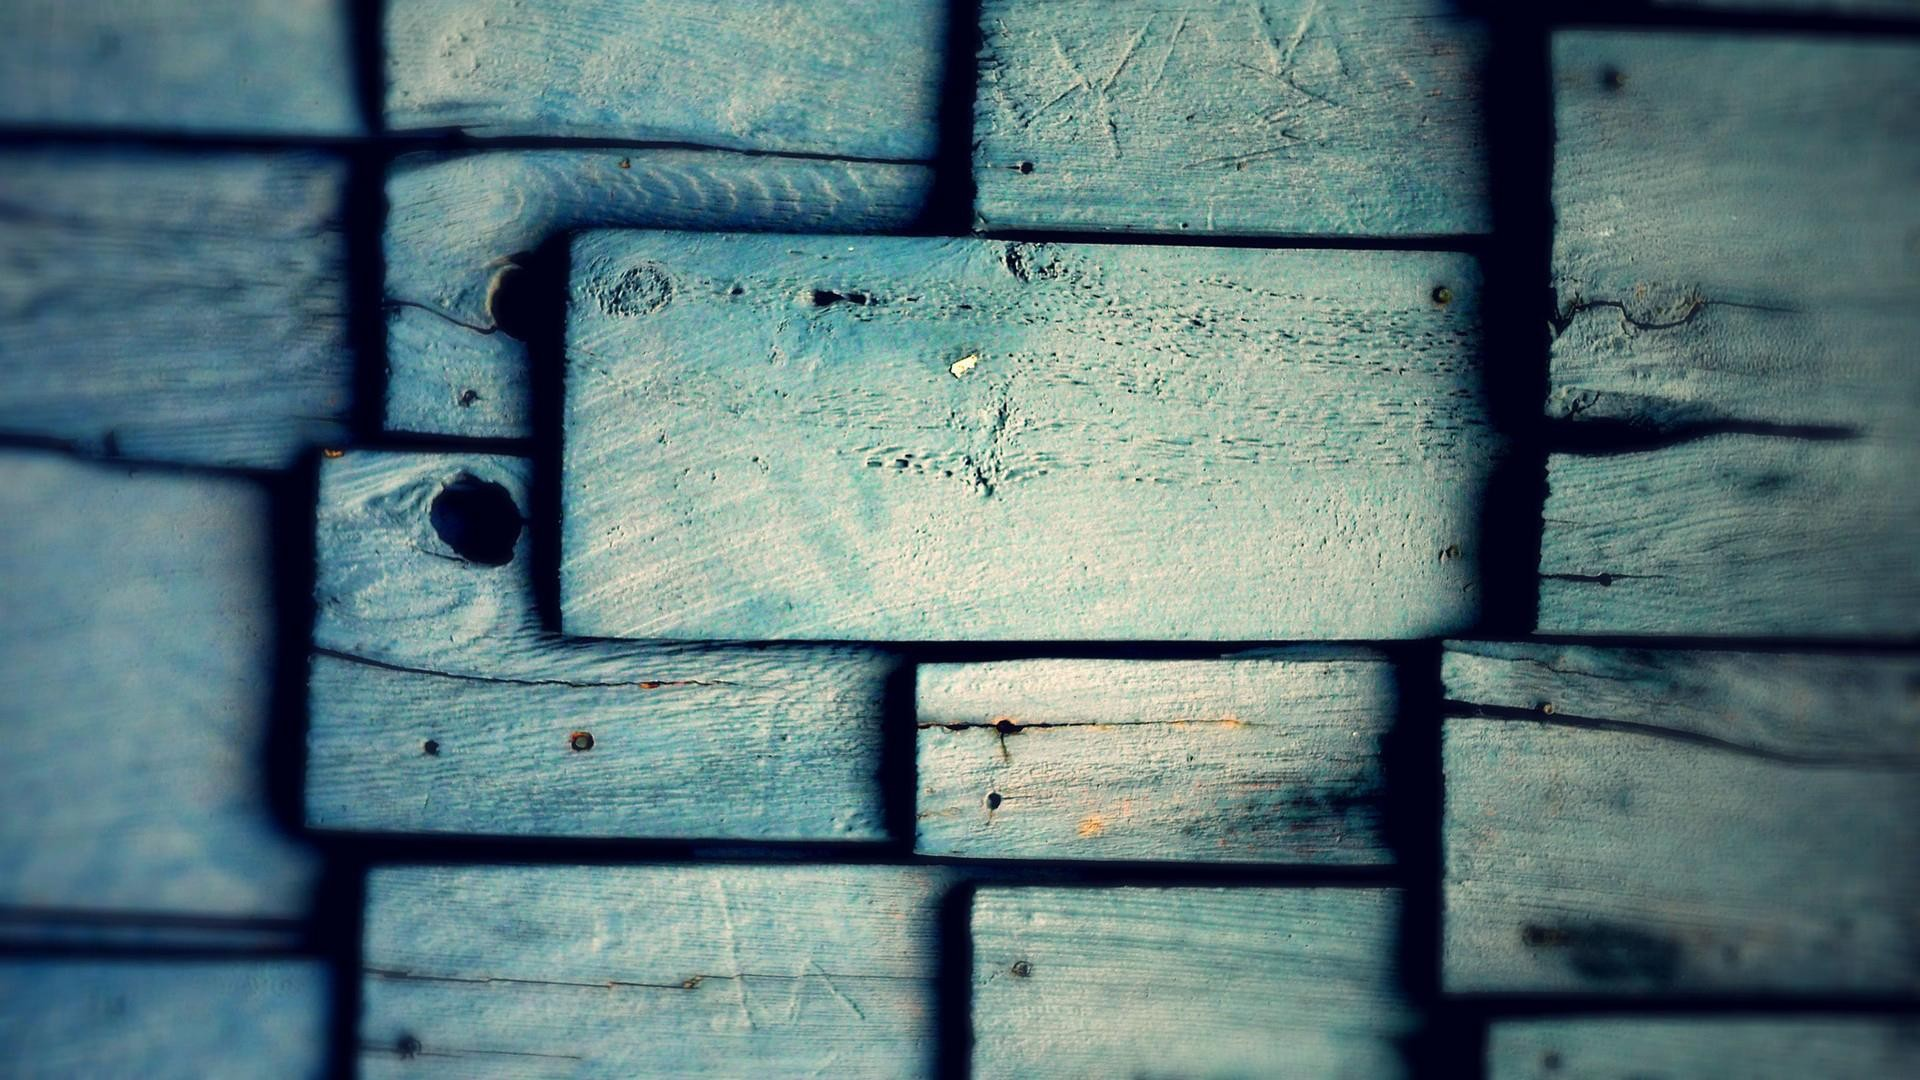 Bookshelf Iphone Wallpaper Vintage Rustic Wood Background With Lace 183 ① Download Free